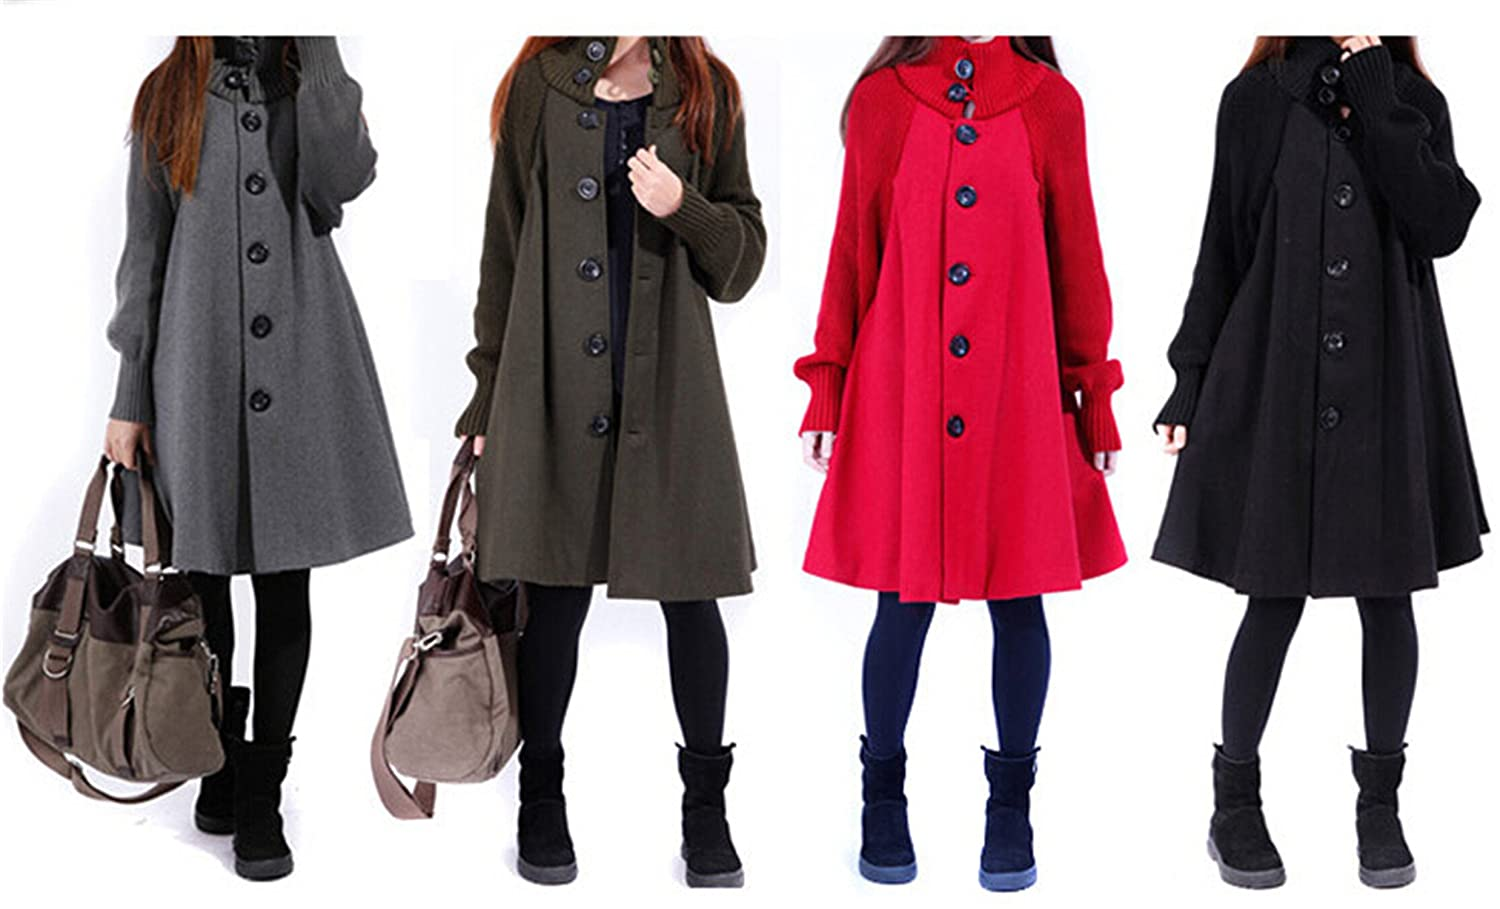 Amazon.com: Stevenurr Popular Outwear Coat Abrigos Mujer Autumn And Winter Cloak Outerwear Women Wool Coat Long Maternity Clothing: Clothing